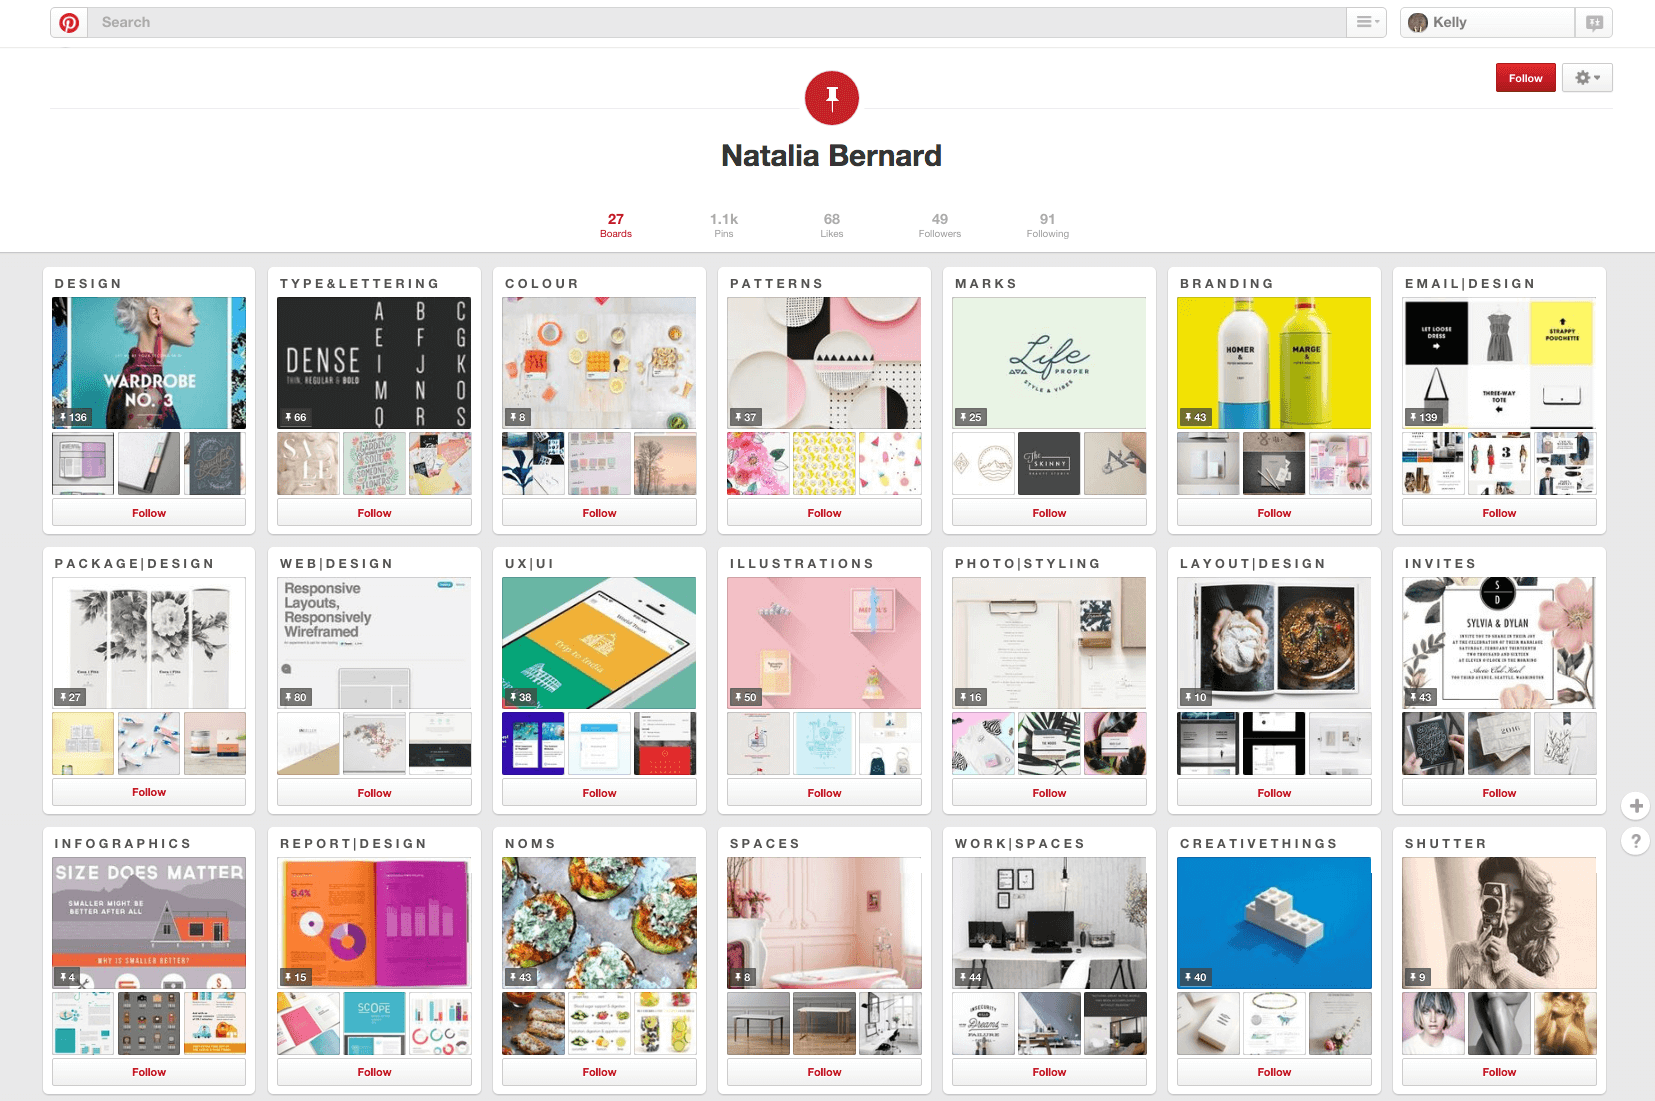 Top 10 Email Design Boards on Pinterest - Email Design